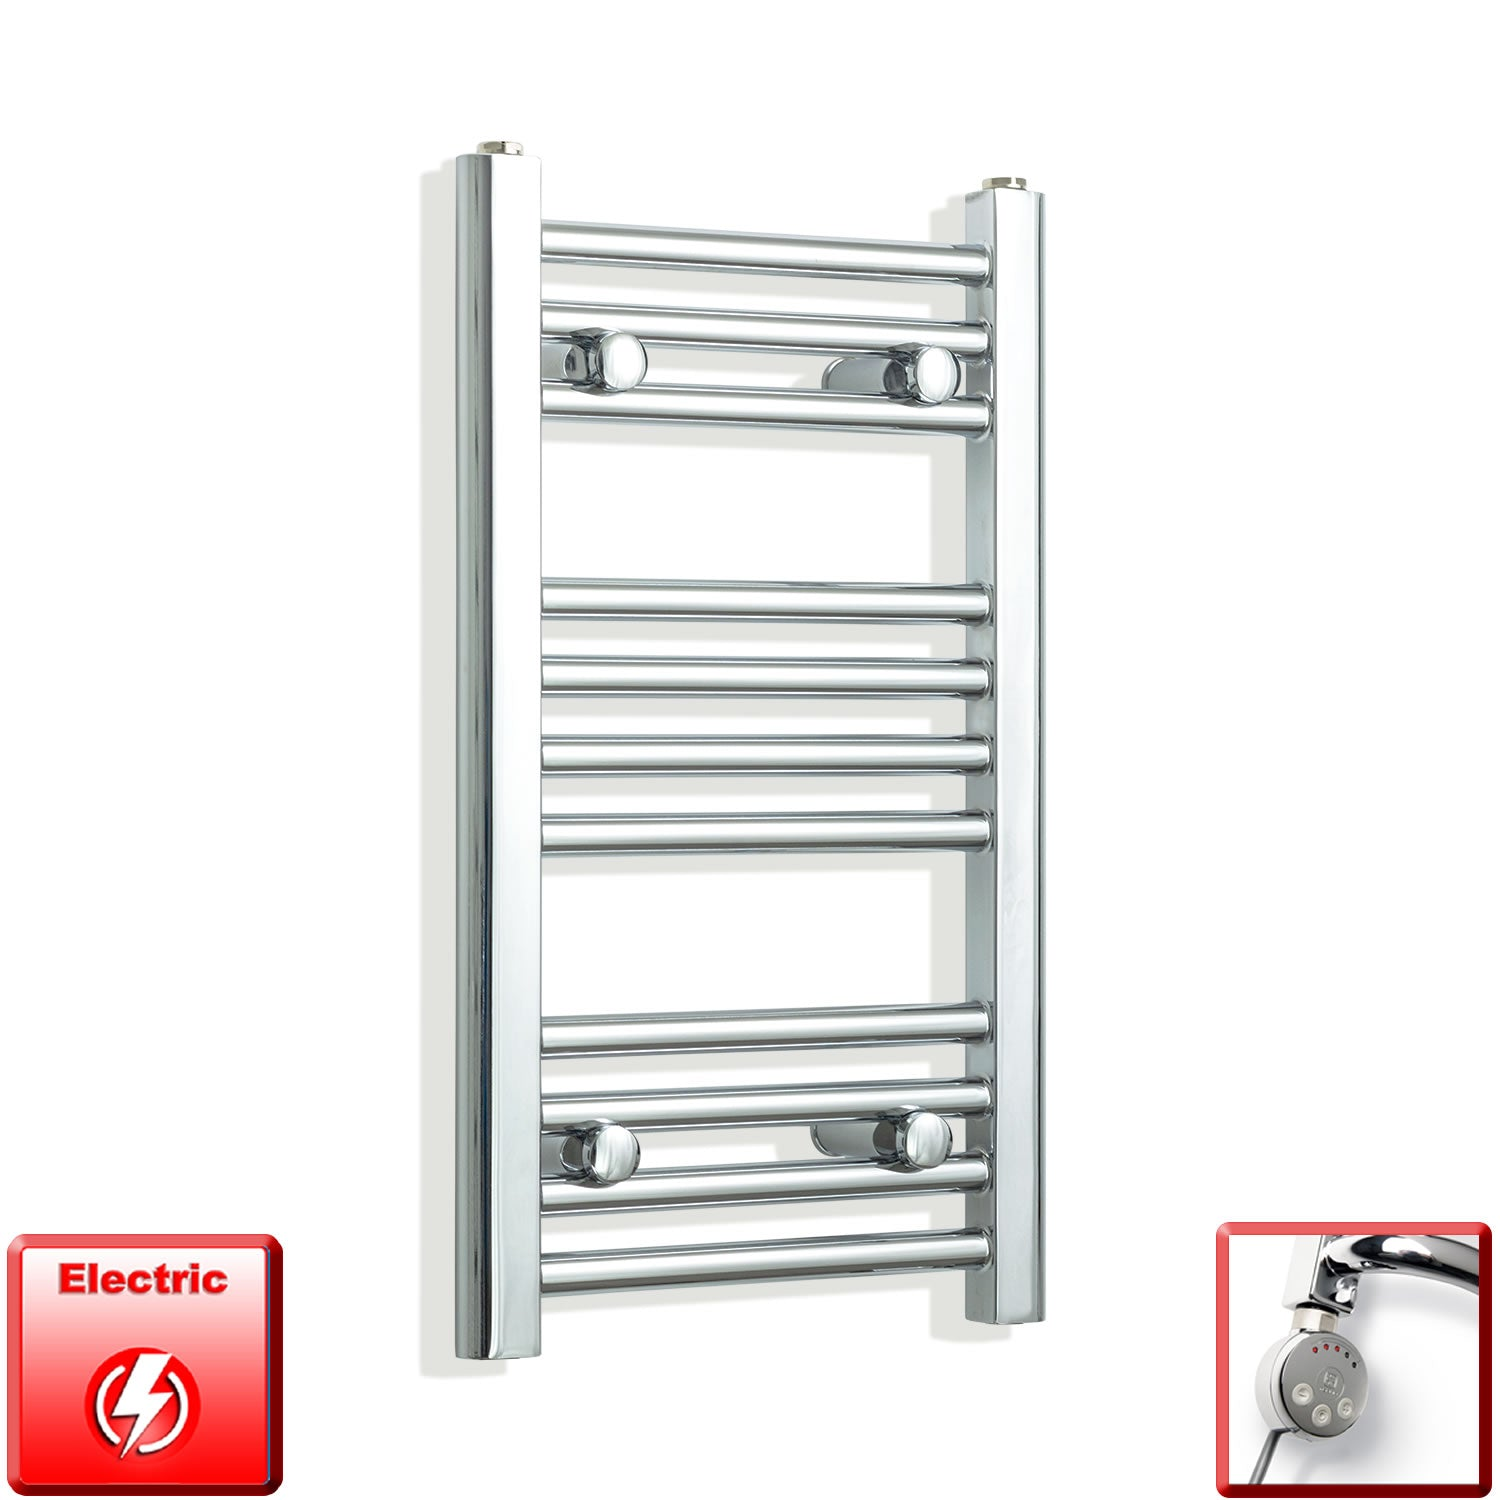 350mm Wide 600mm High Flat Chrome Pre-Filled Electric Heated Towel Rail Radiator HTR,MEG Thermostatic Element